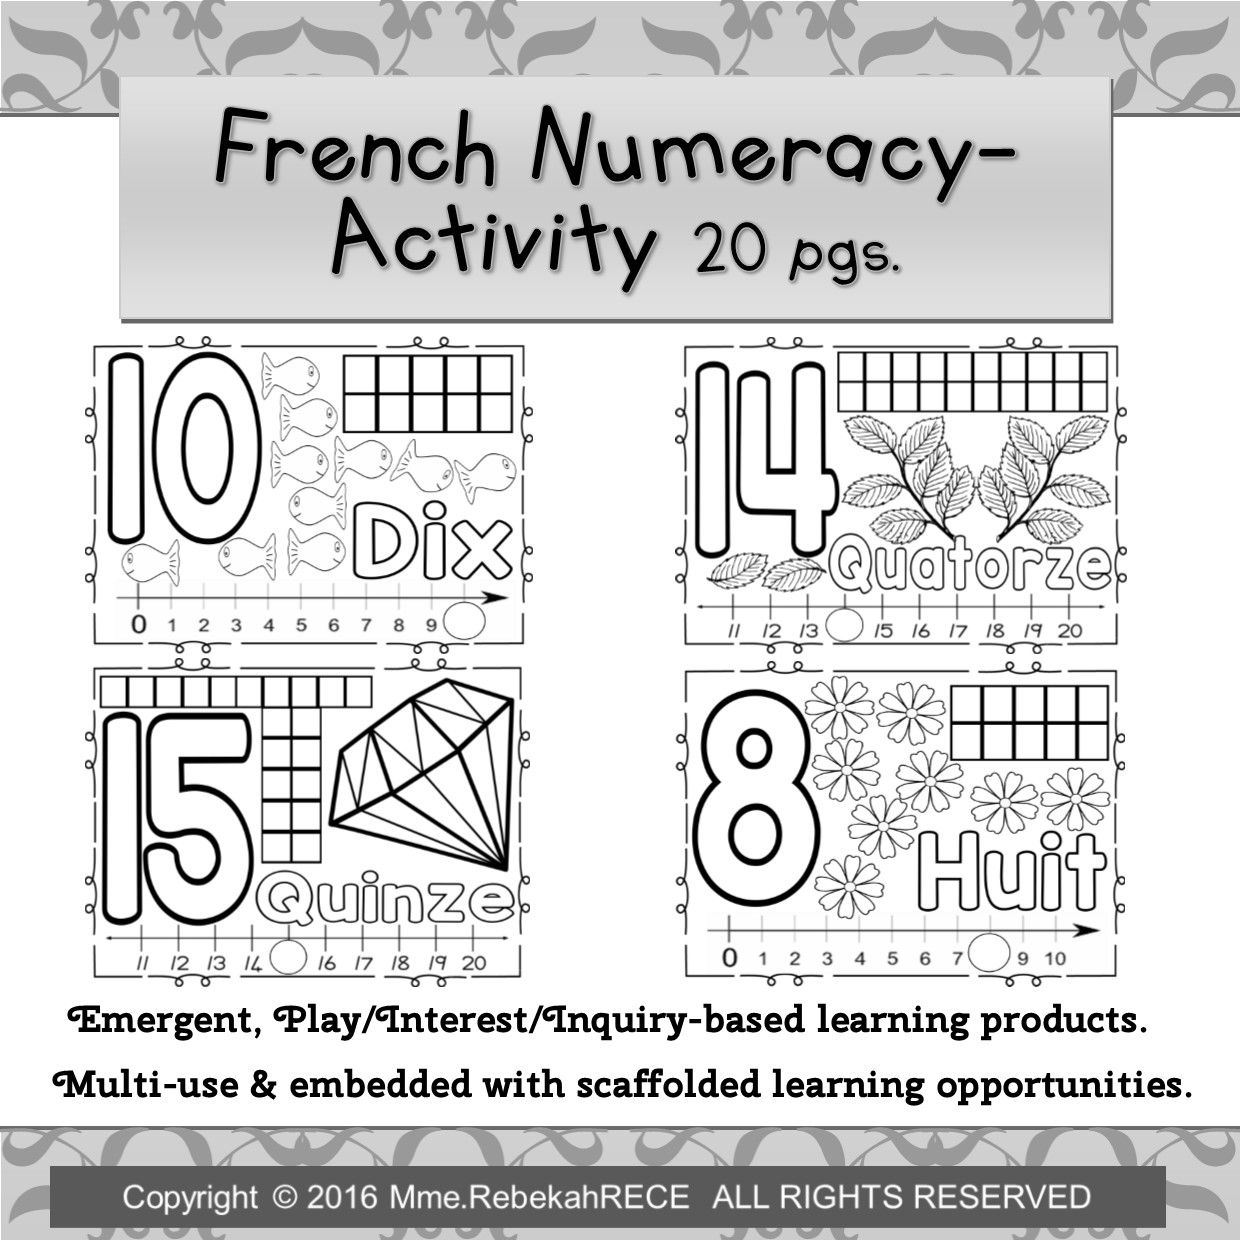 french numeracy activity 20 pgs for emergent curriculum invitations french immersion. Black Bedroom Furniture Sets. Home Design Ideas